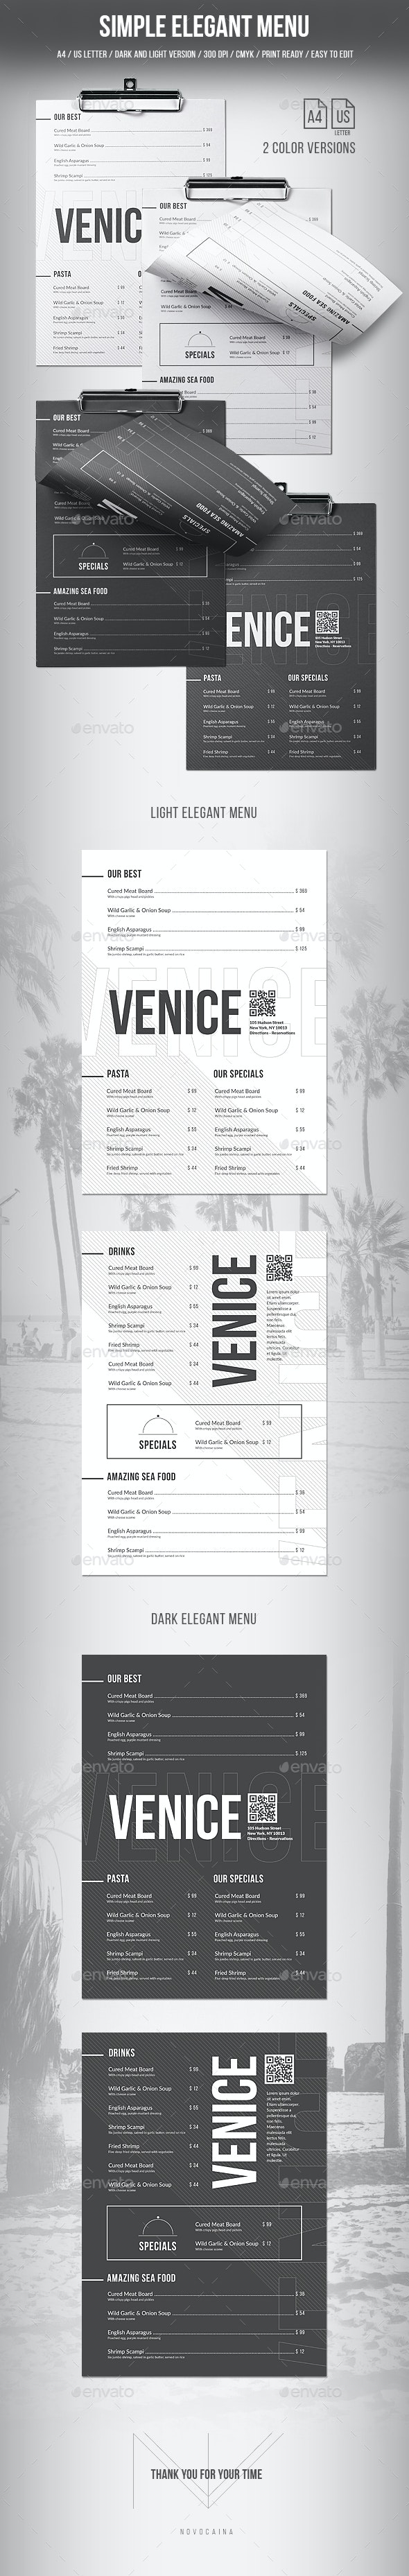 Simple Elegant Menu - A4 and US Letter - 2 Color Versions - Food Menus Print Templates